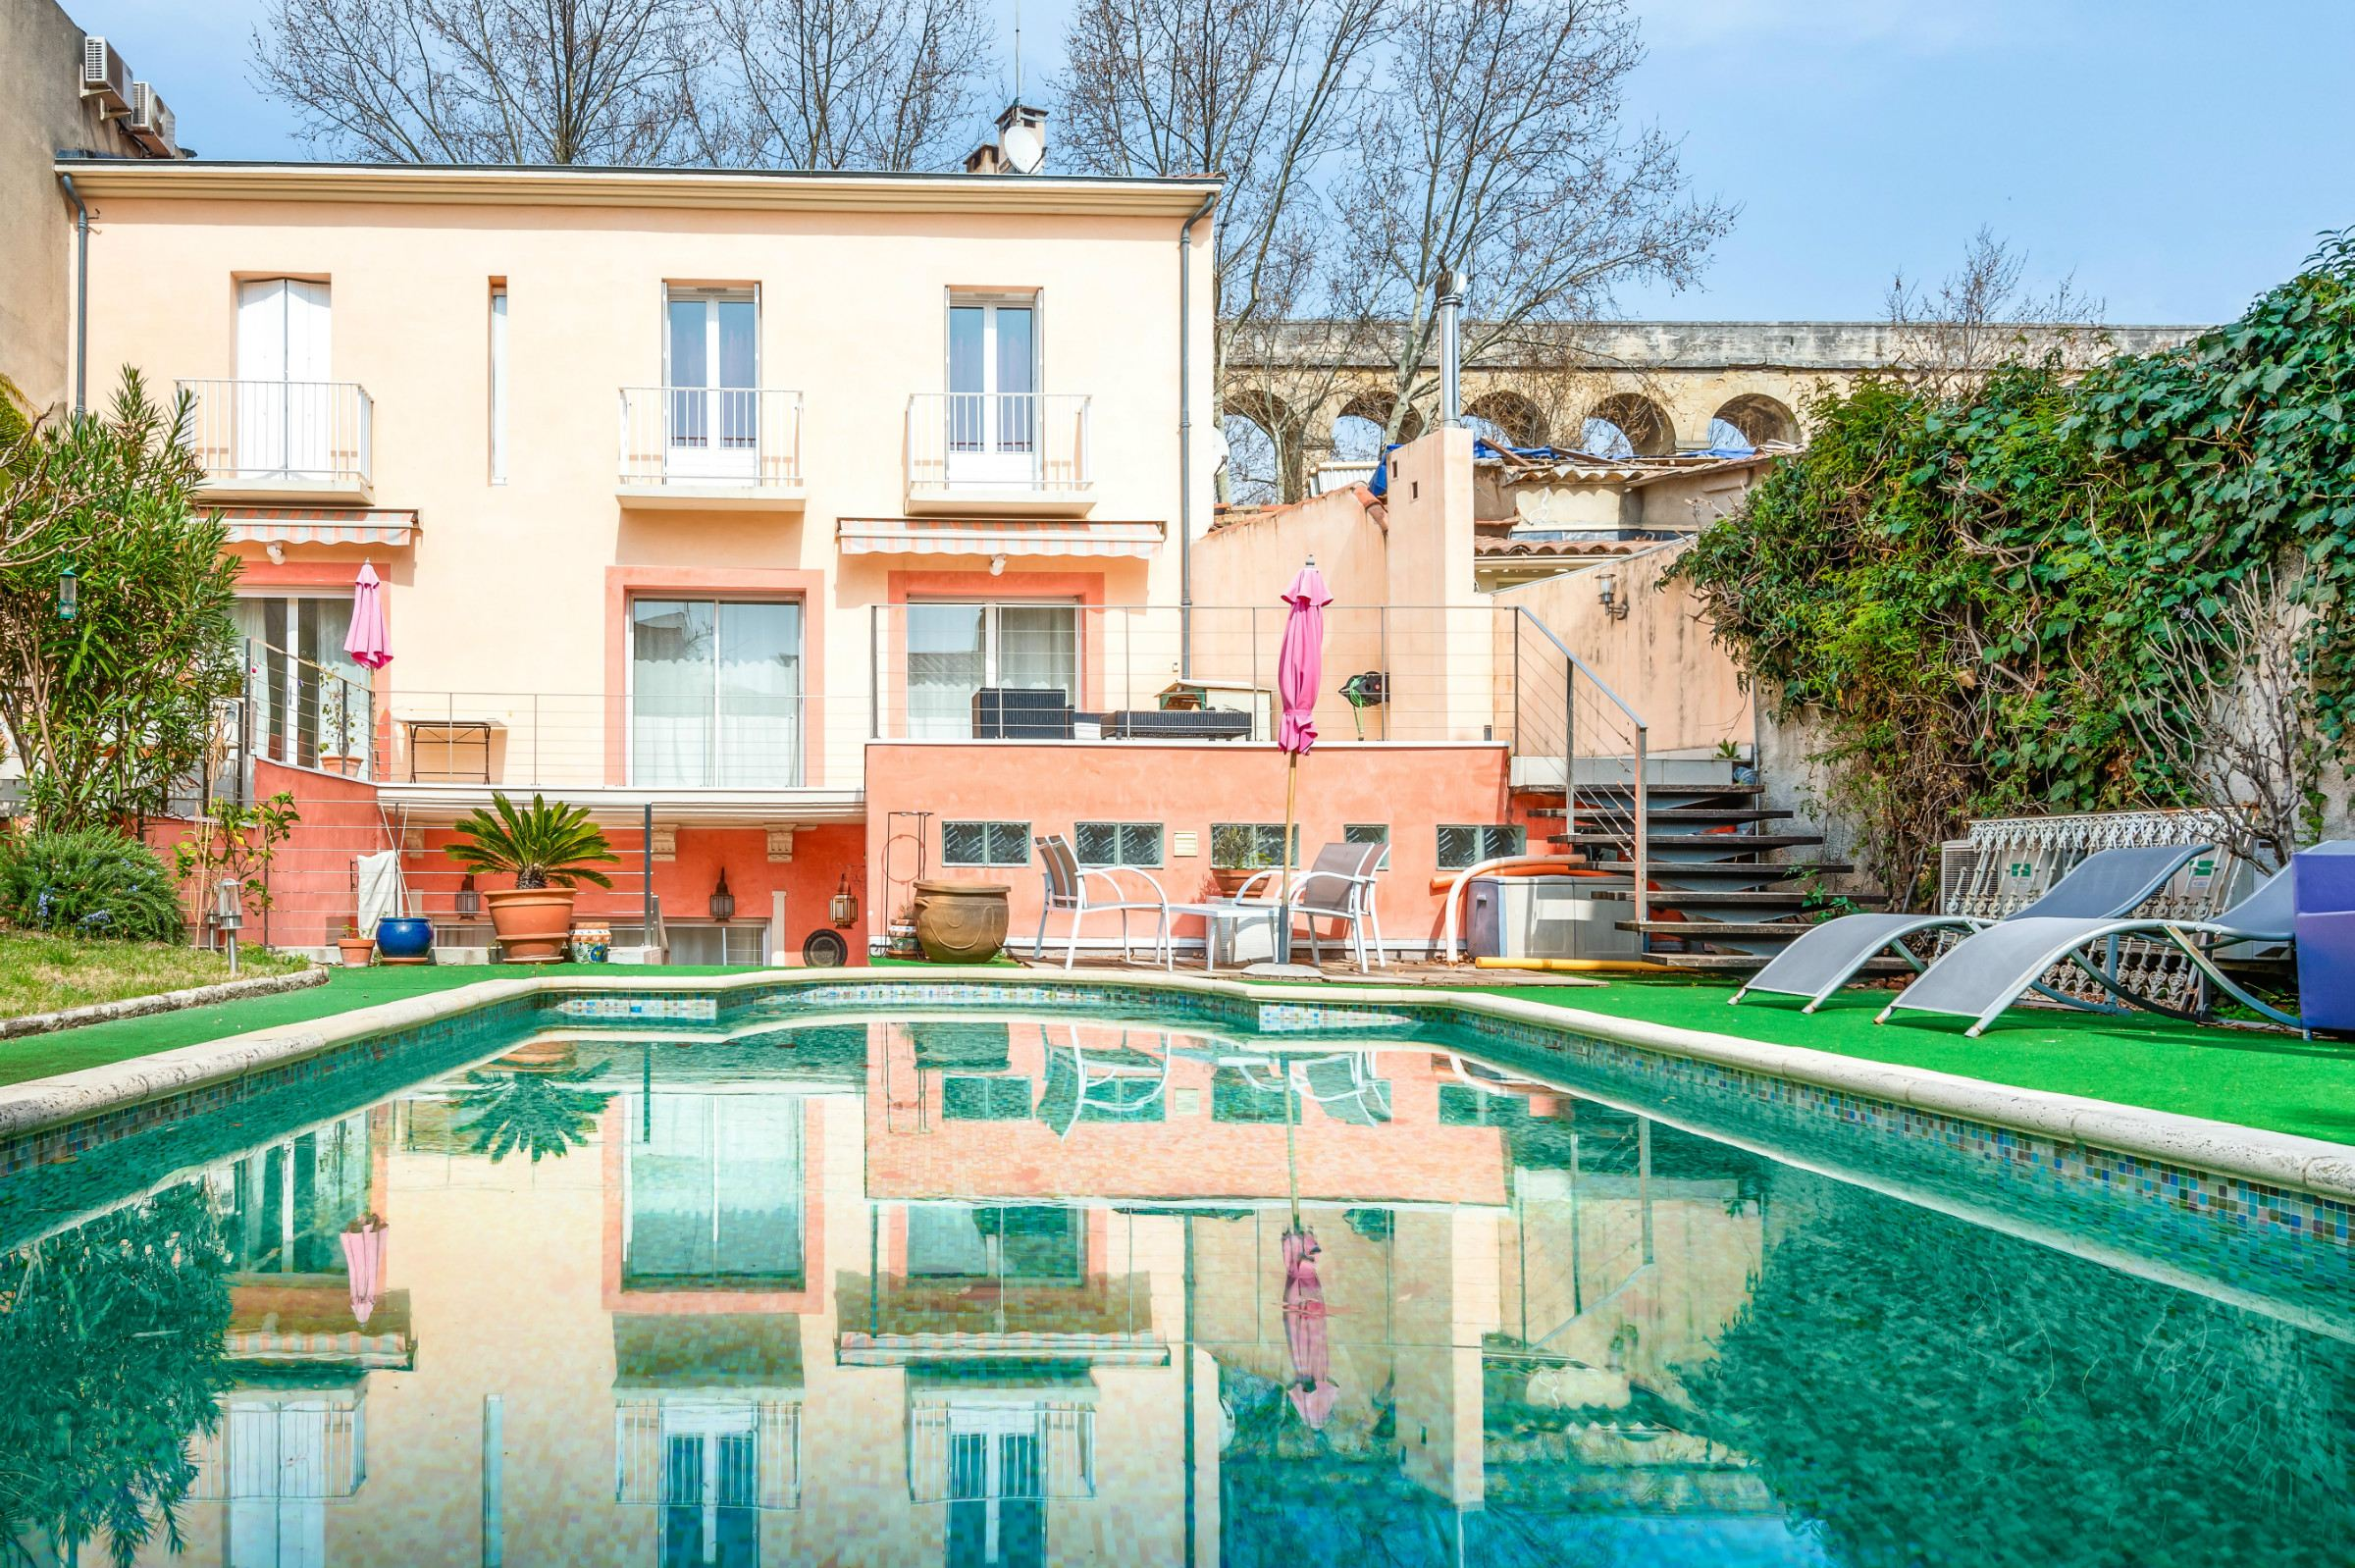 Property For Sale at BEAUTIFUL PROPERTY IN THE HEART OF MONTPELLIER